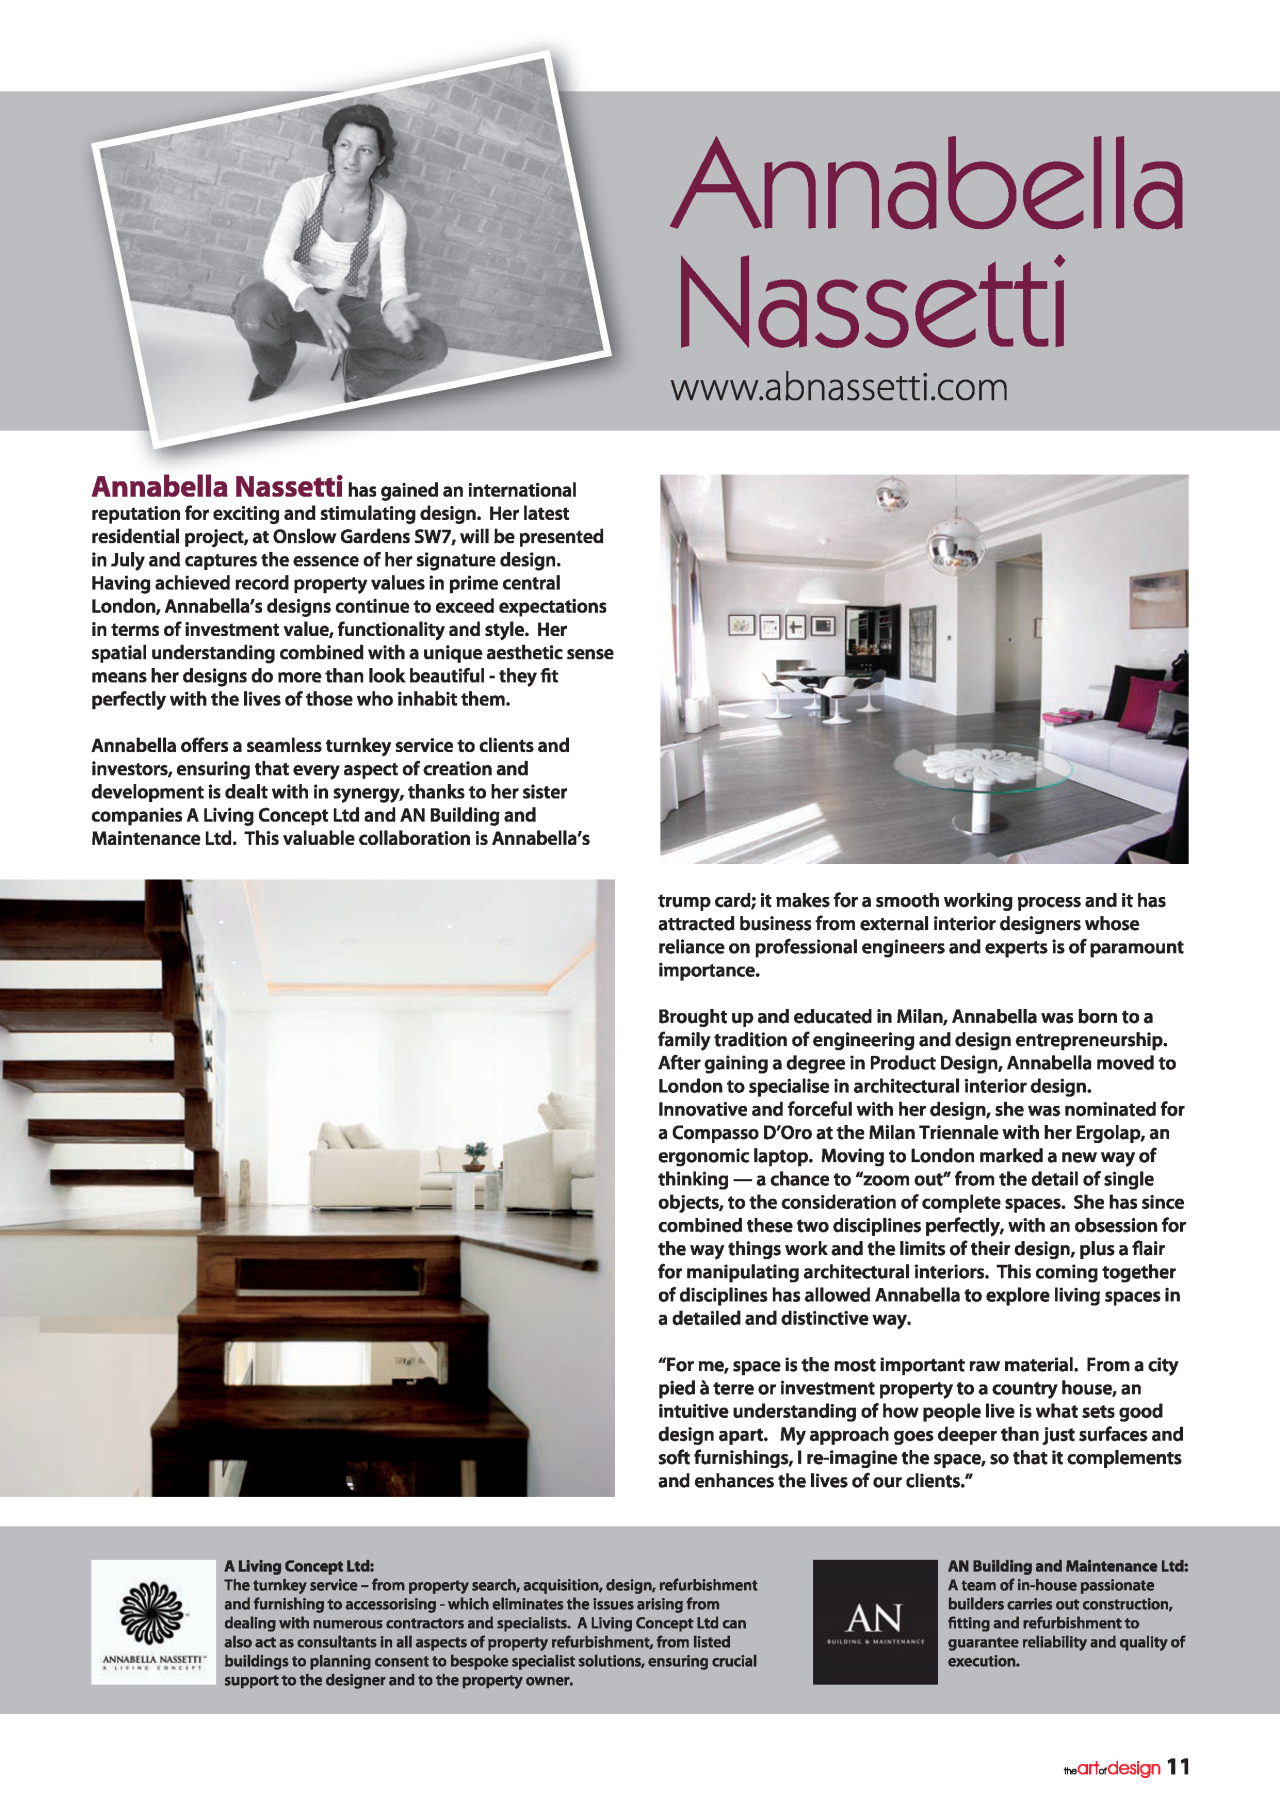 Complete Interior Design Consultant in The Art Design Mag